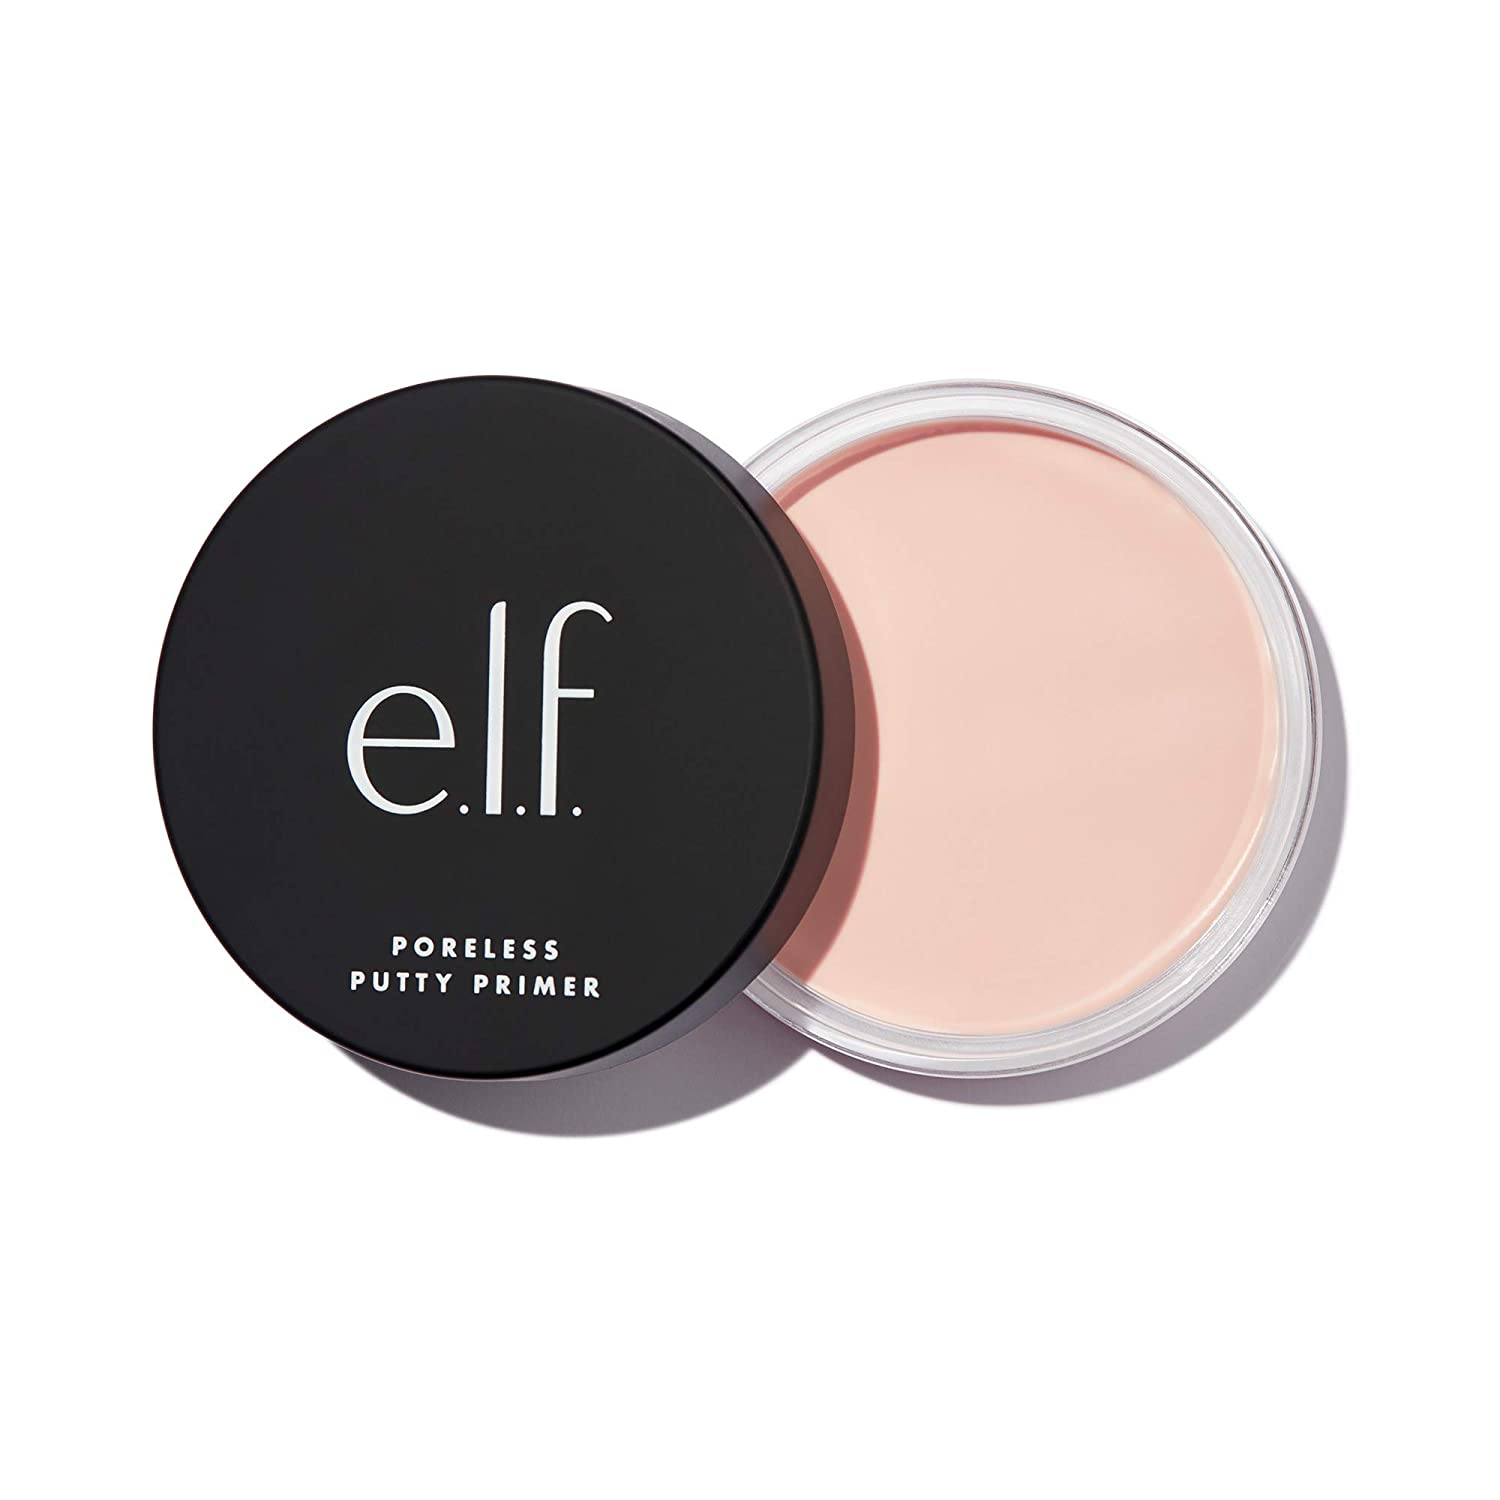 E.l.f Cosmetics Poreless Putty Primer